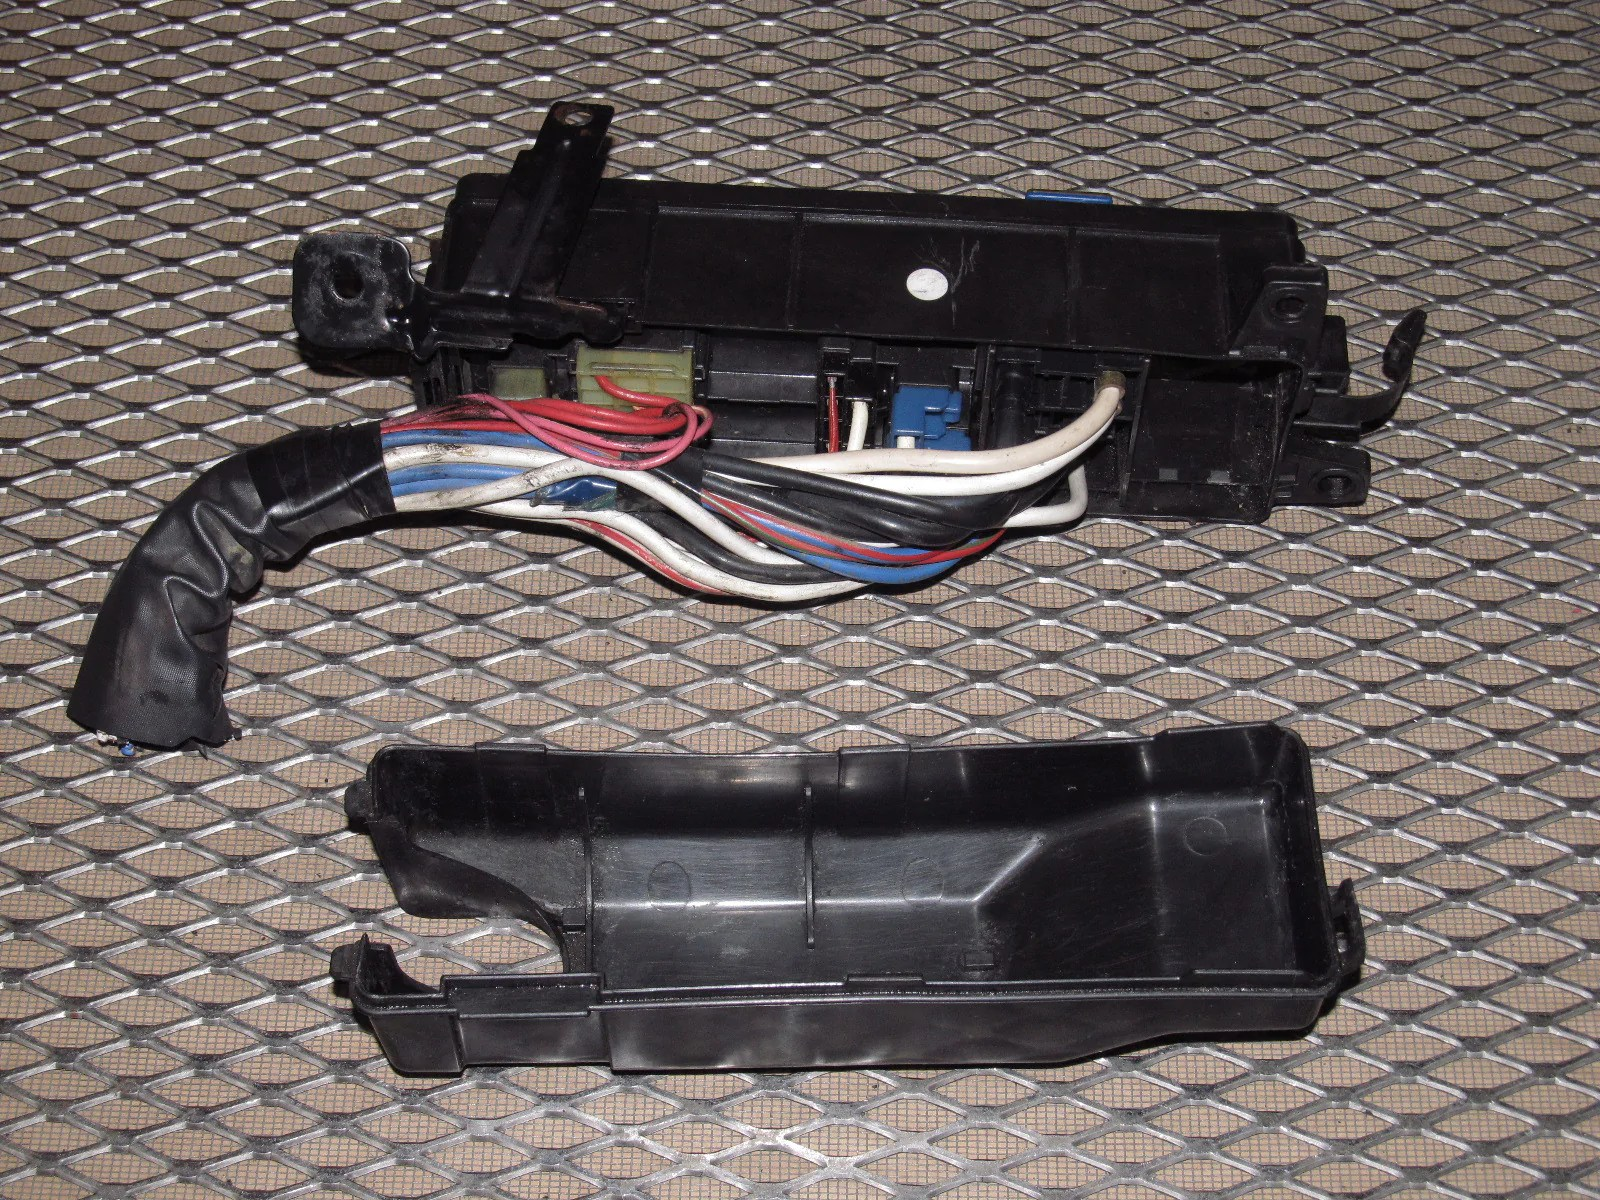 89 90 91 92 toyota supra oem engine fuse box turbo [ 1600 x 1200 Pixel ]